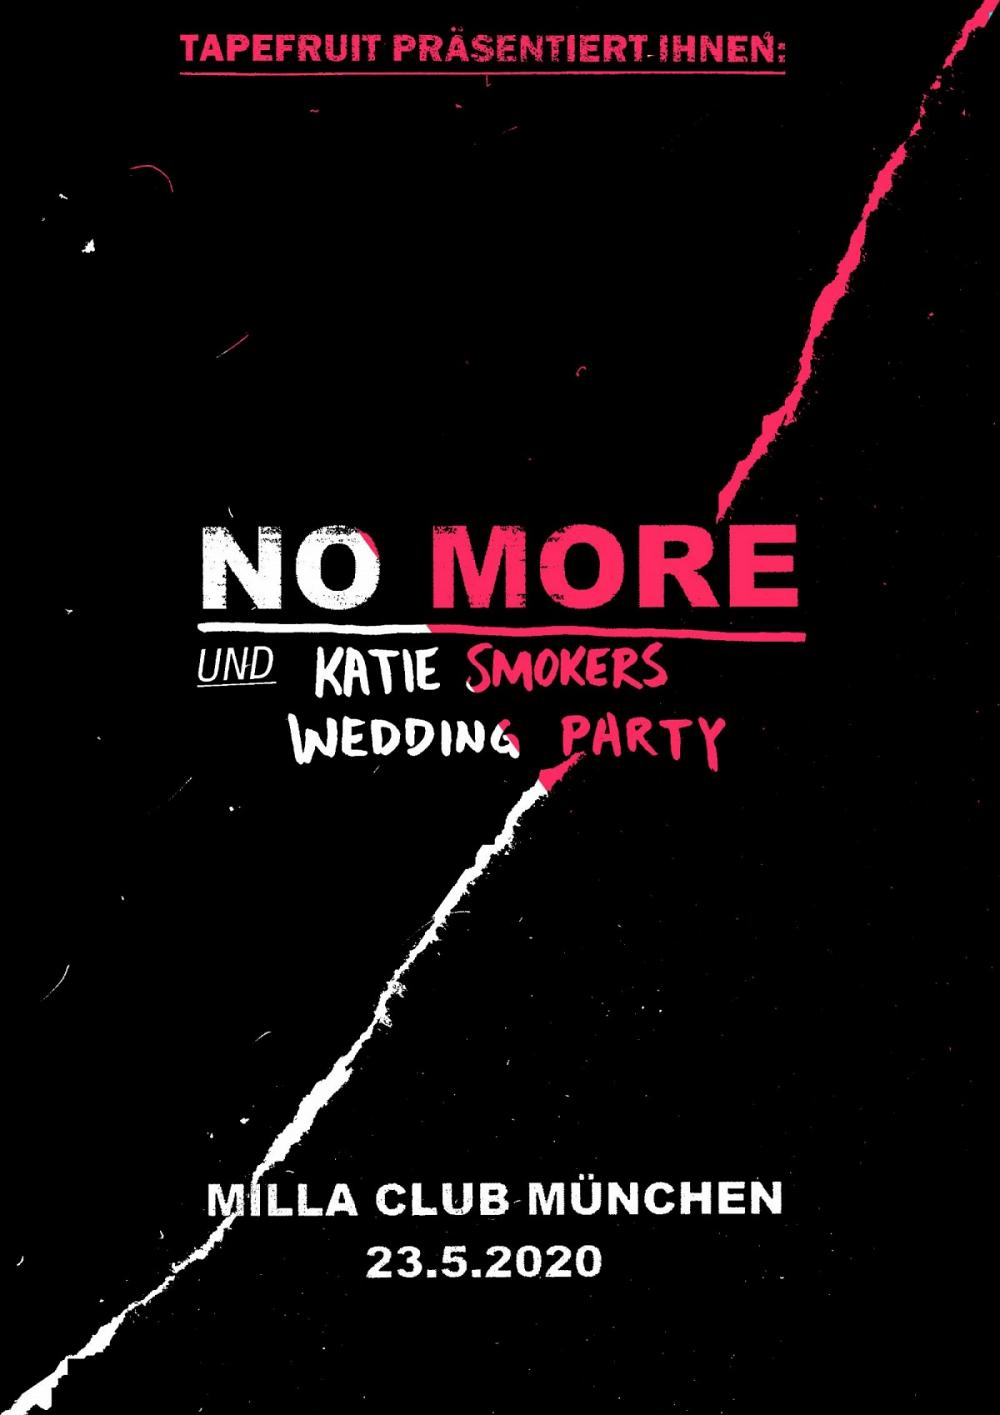 Tapefruit Konzert: NO MORE + Katie Smokers Wedding Party | 23.05.2020 @ Milla Club